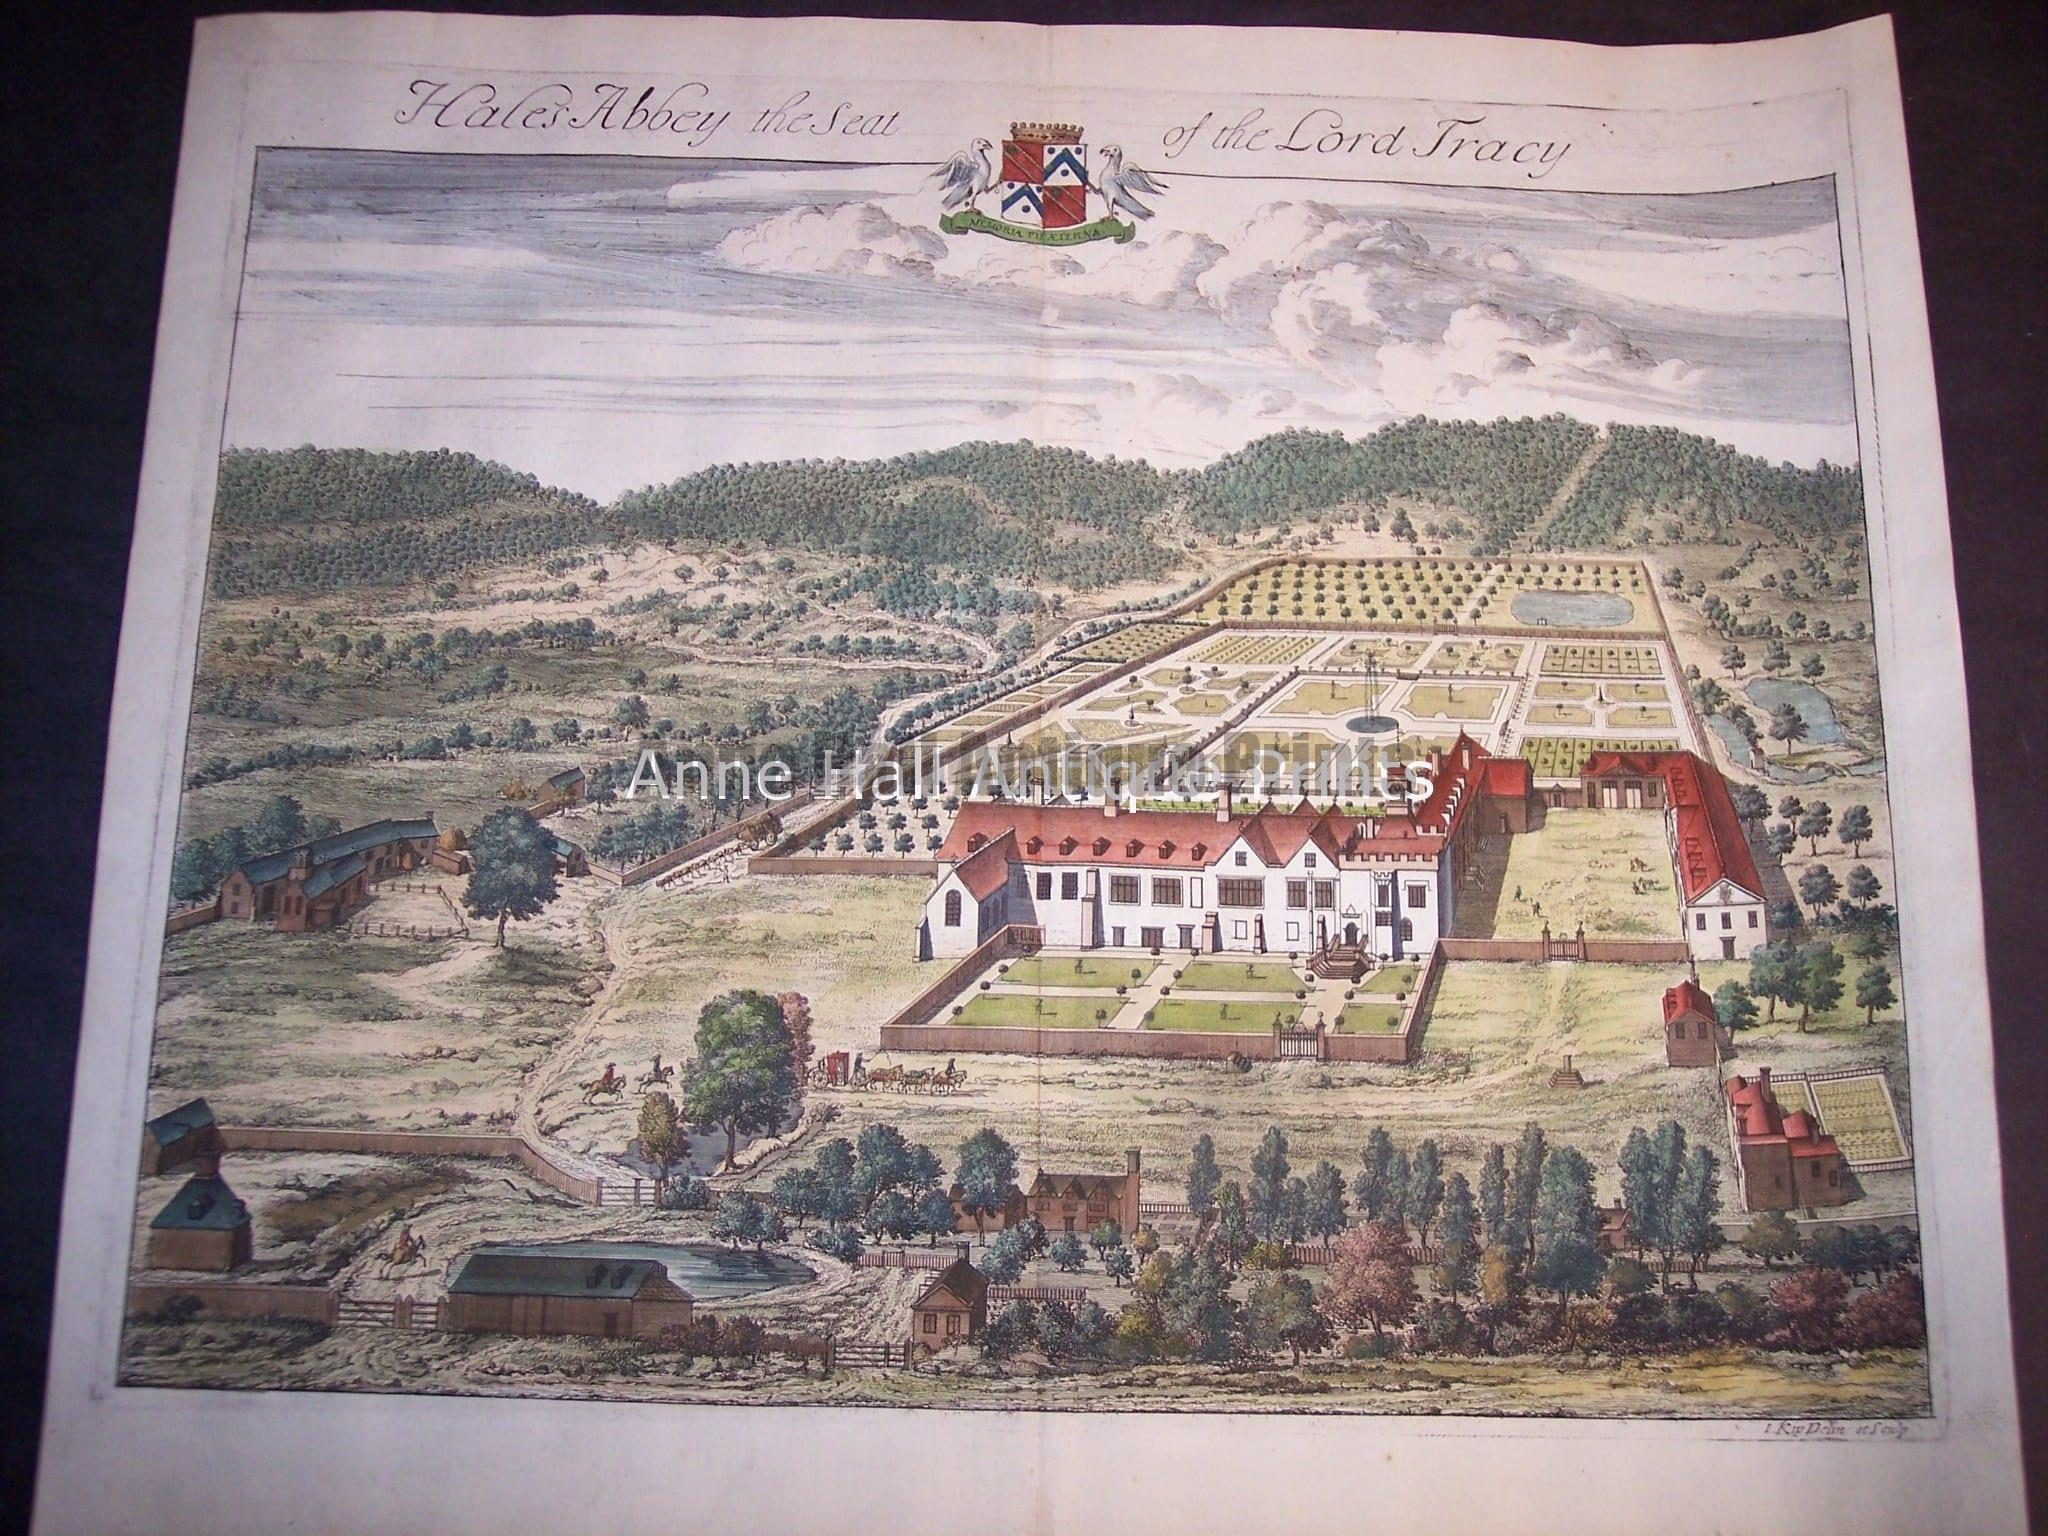 Kips view from 1715